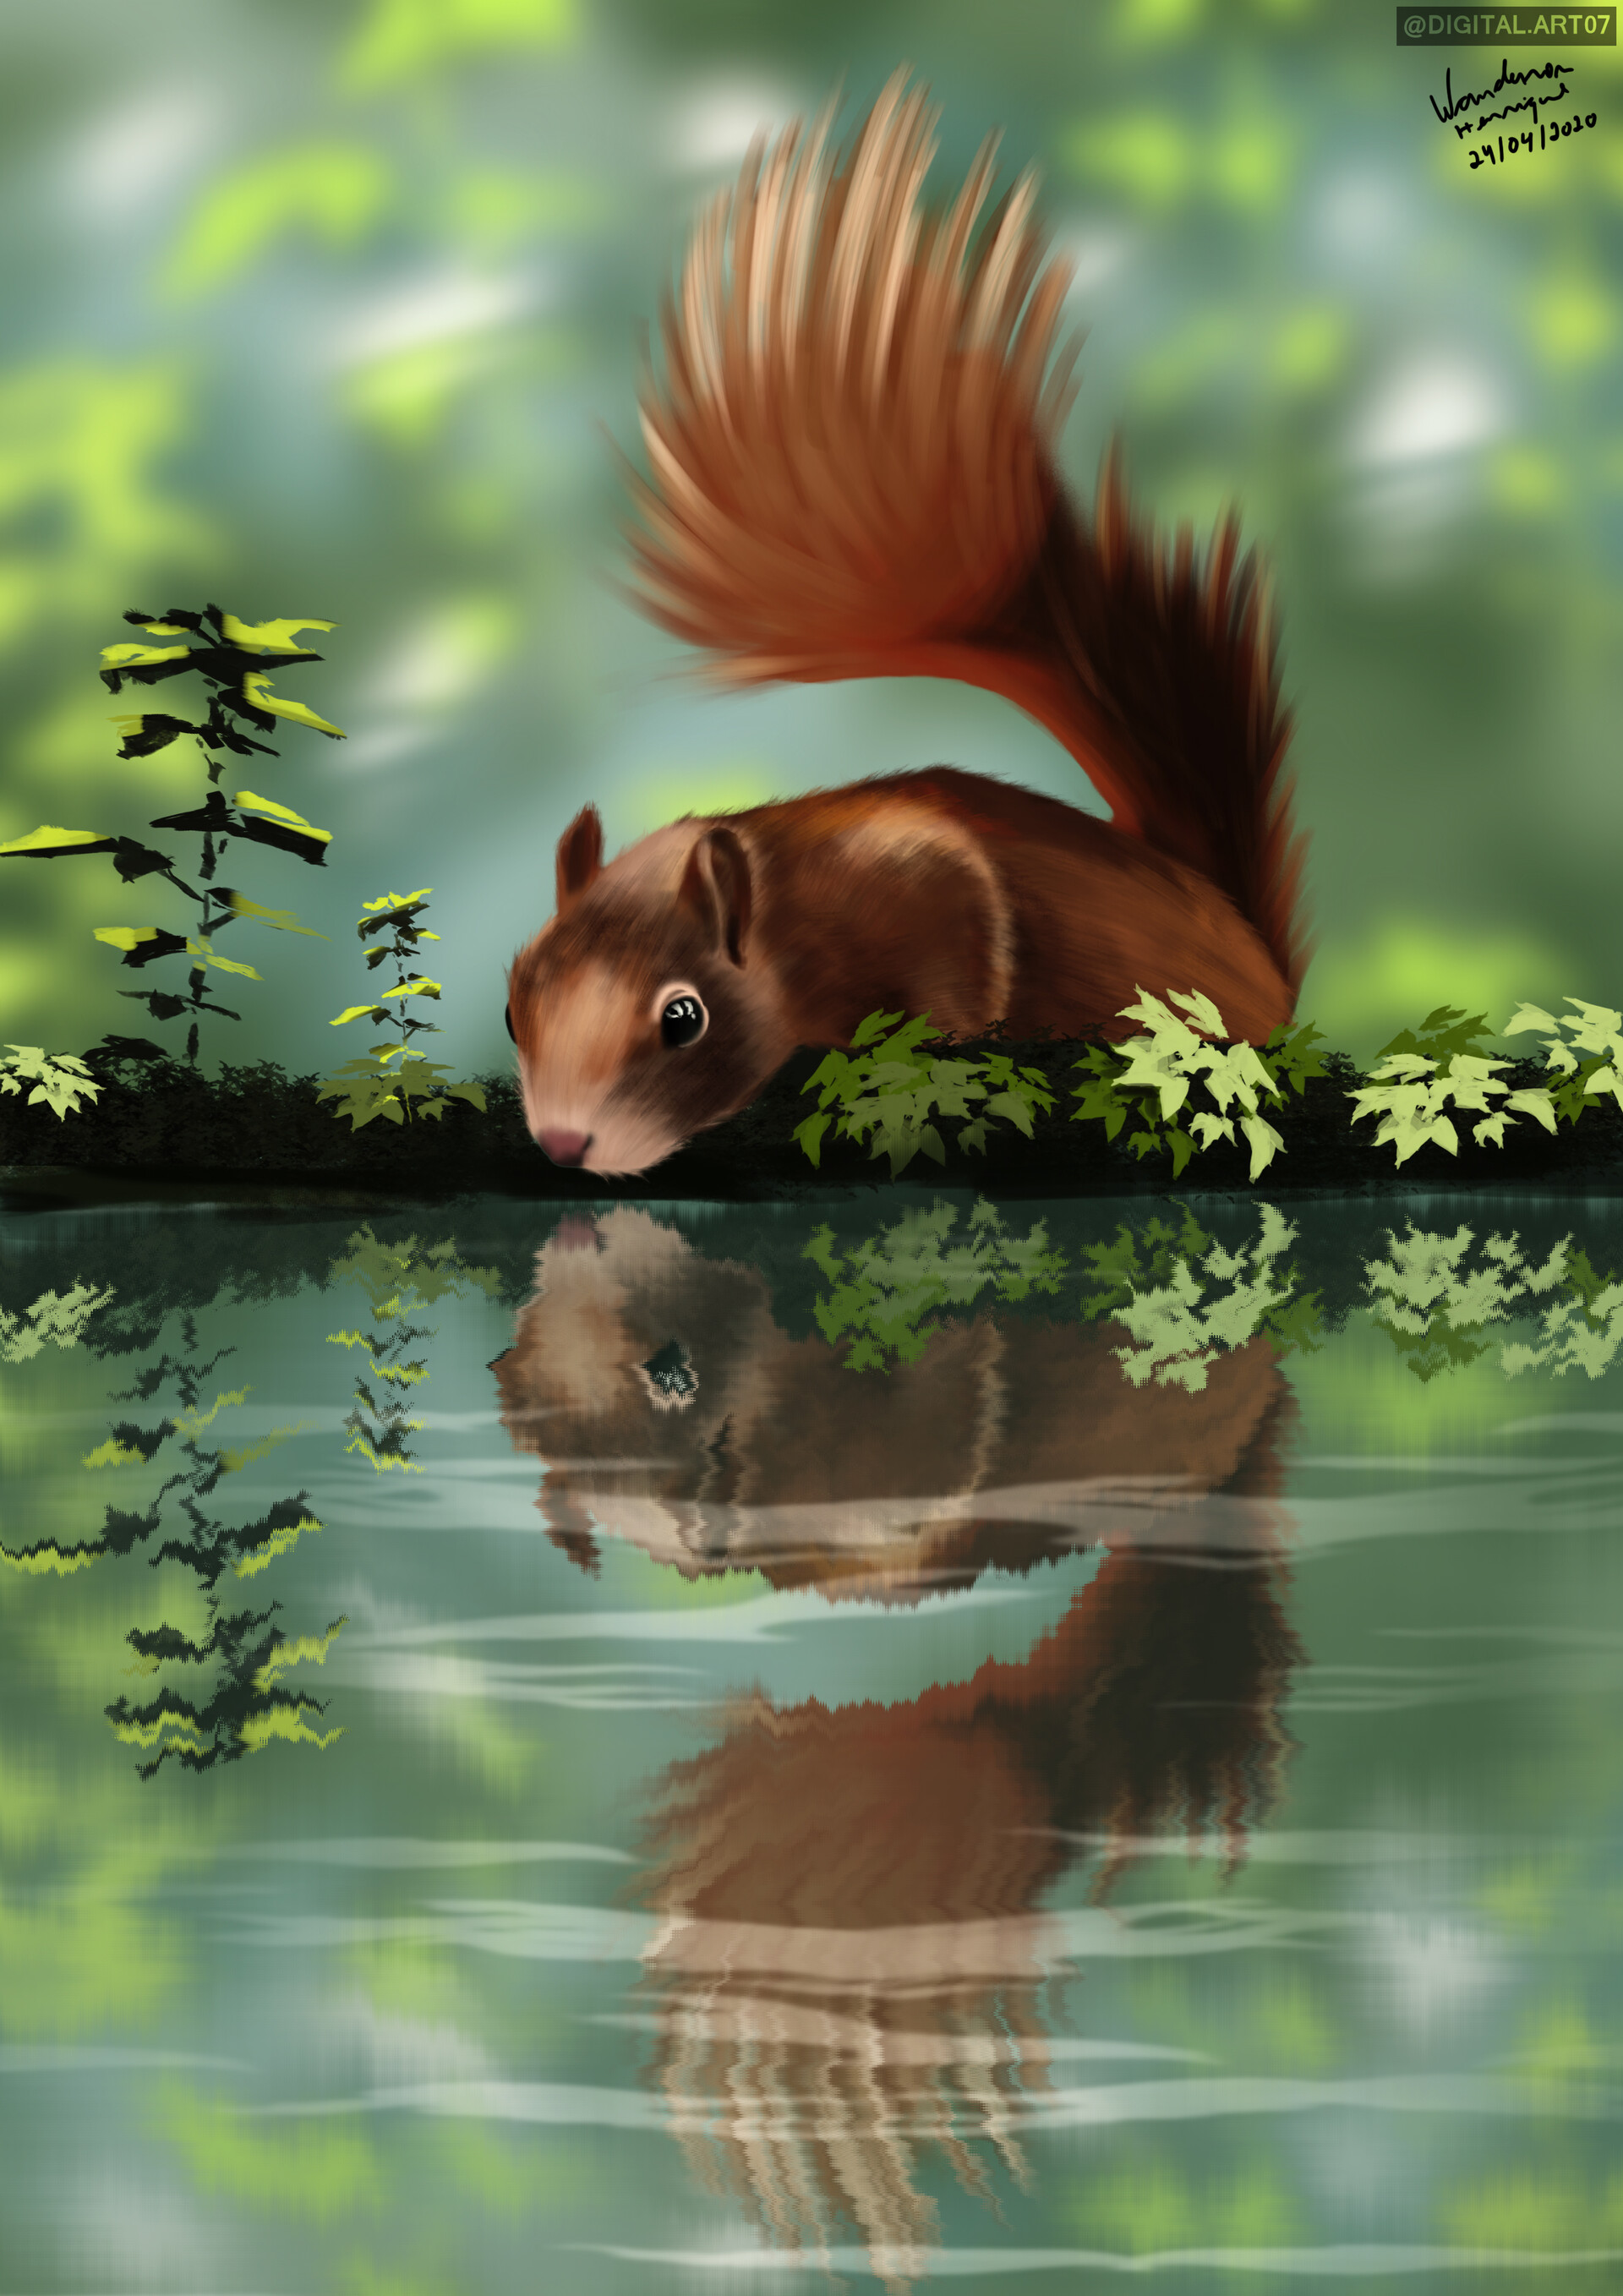 85340 download wallpaper Squirrel, Beast, Reflection, Art screensavers and pictures for free